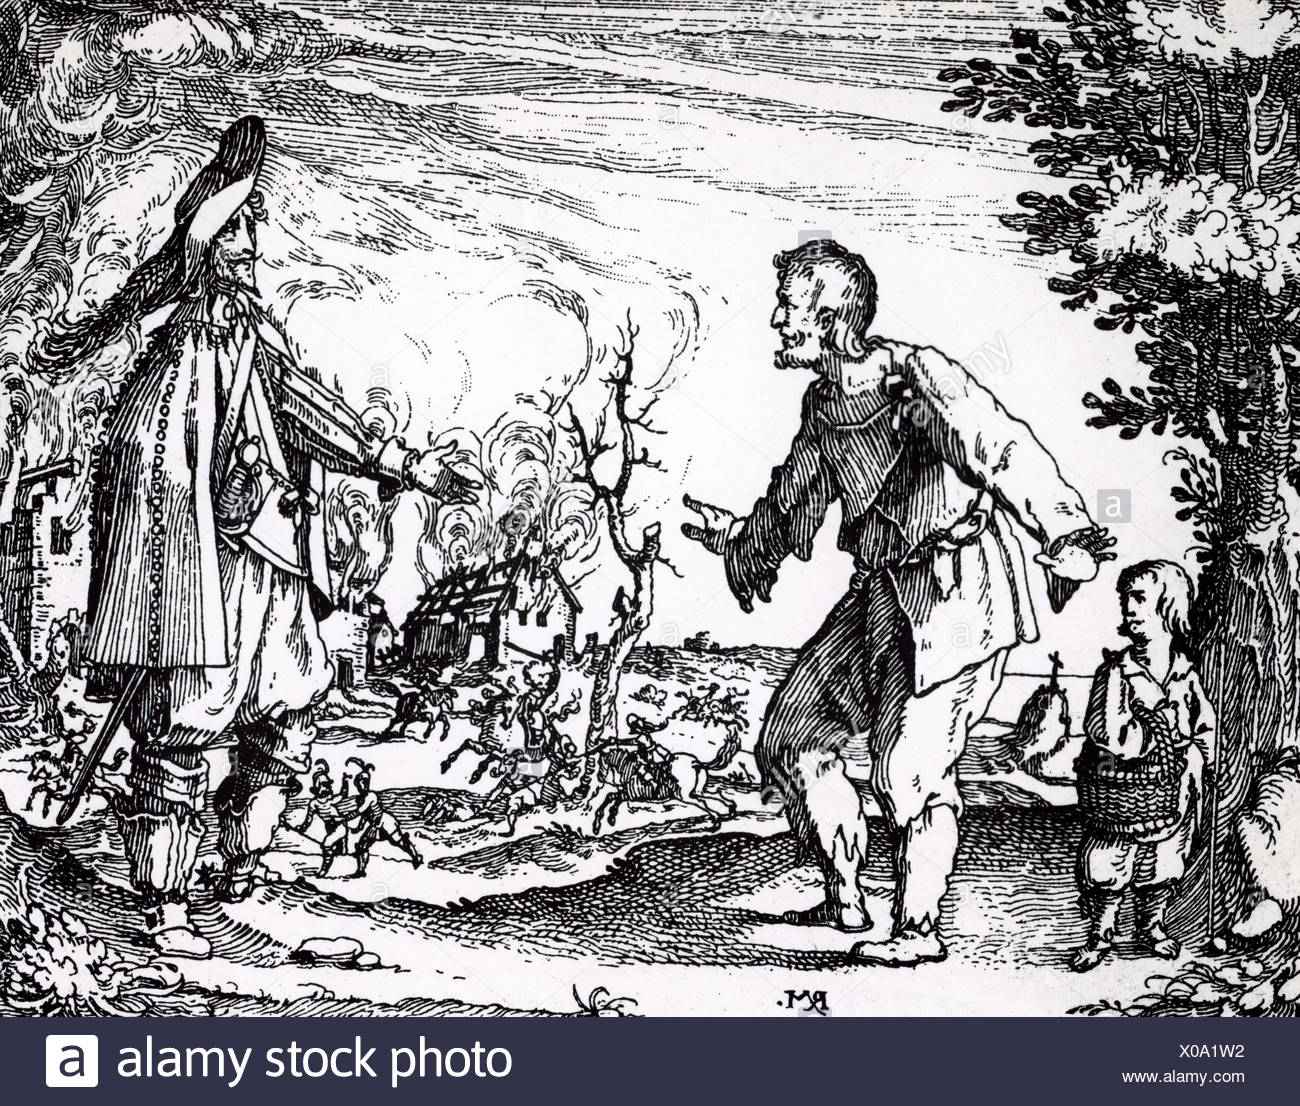 events, Thirty Years War 1618 - 1648, misery/adversity, pillaging soldiers, engraving by Rudolph Meyer, 1630/1635, Additional-Rights-Clearances-NA - Stock Image